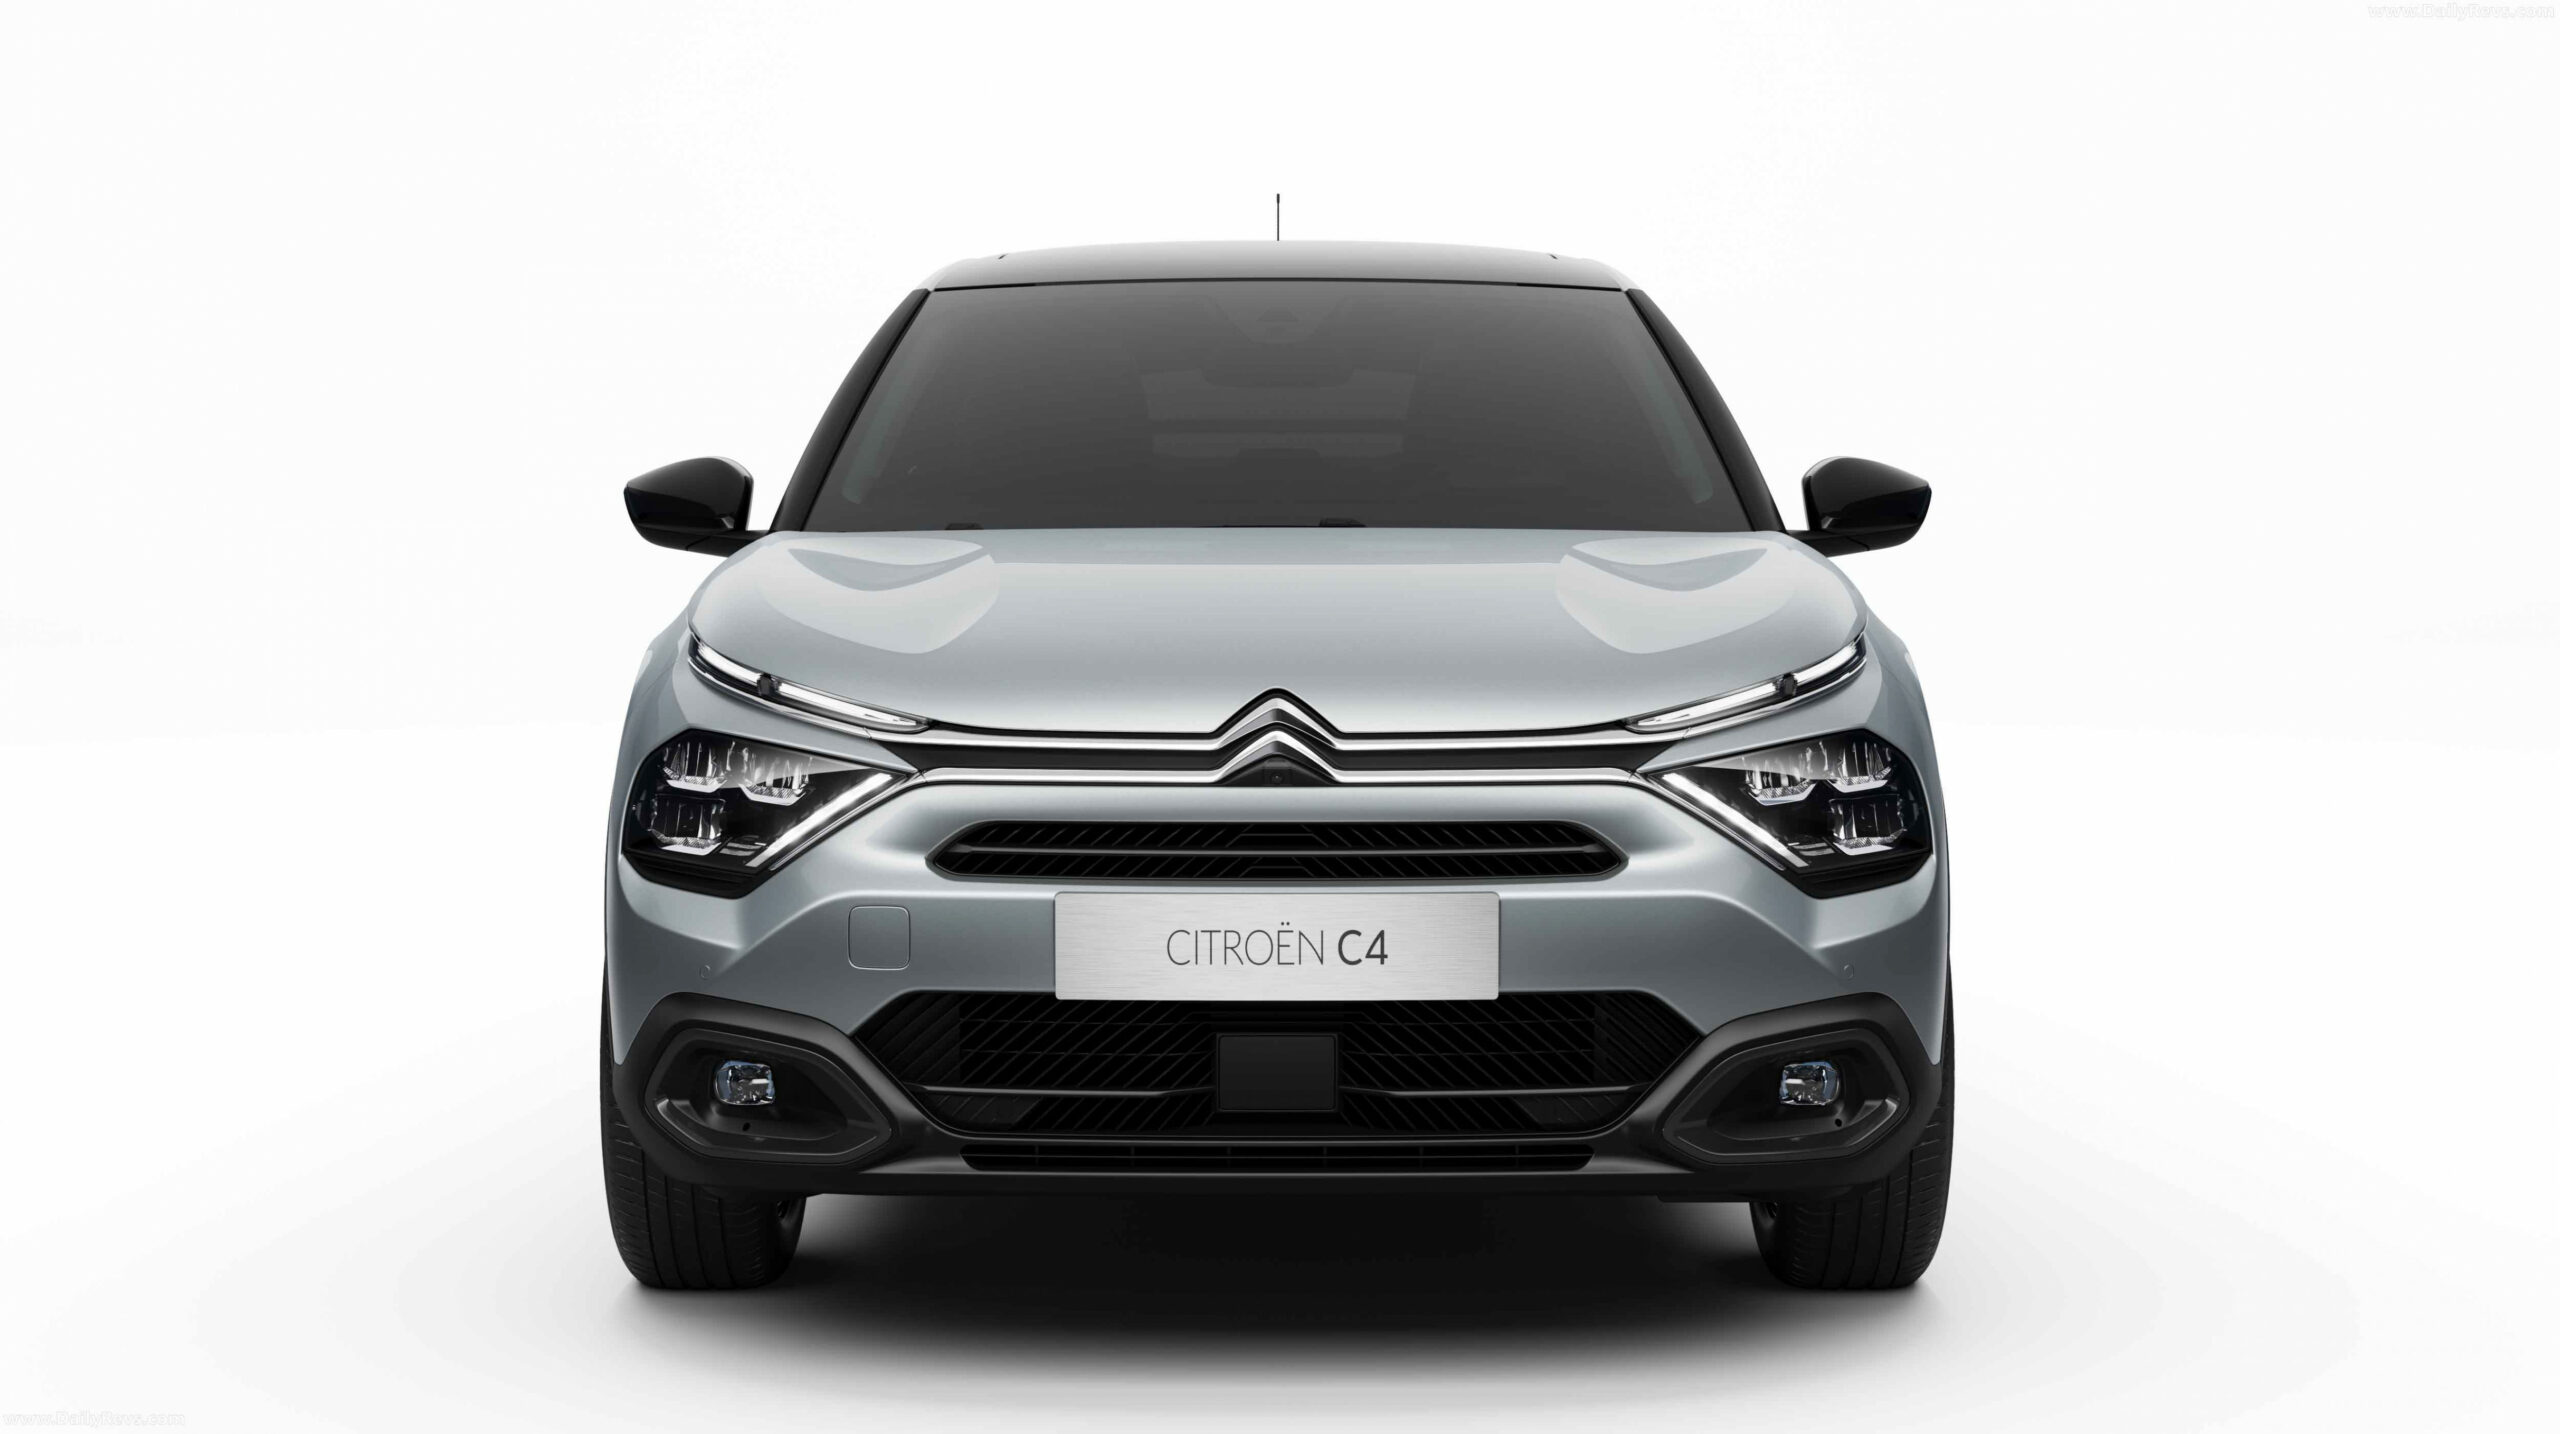 Rumors 2022 New Citroen C4